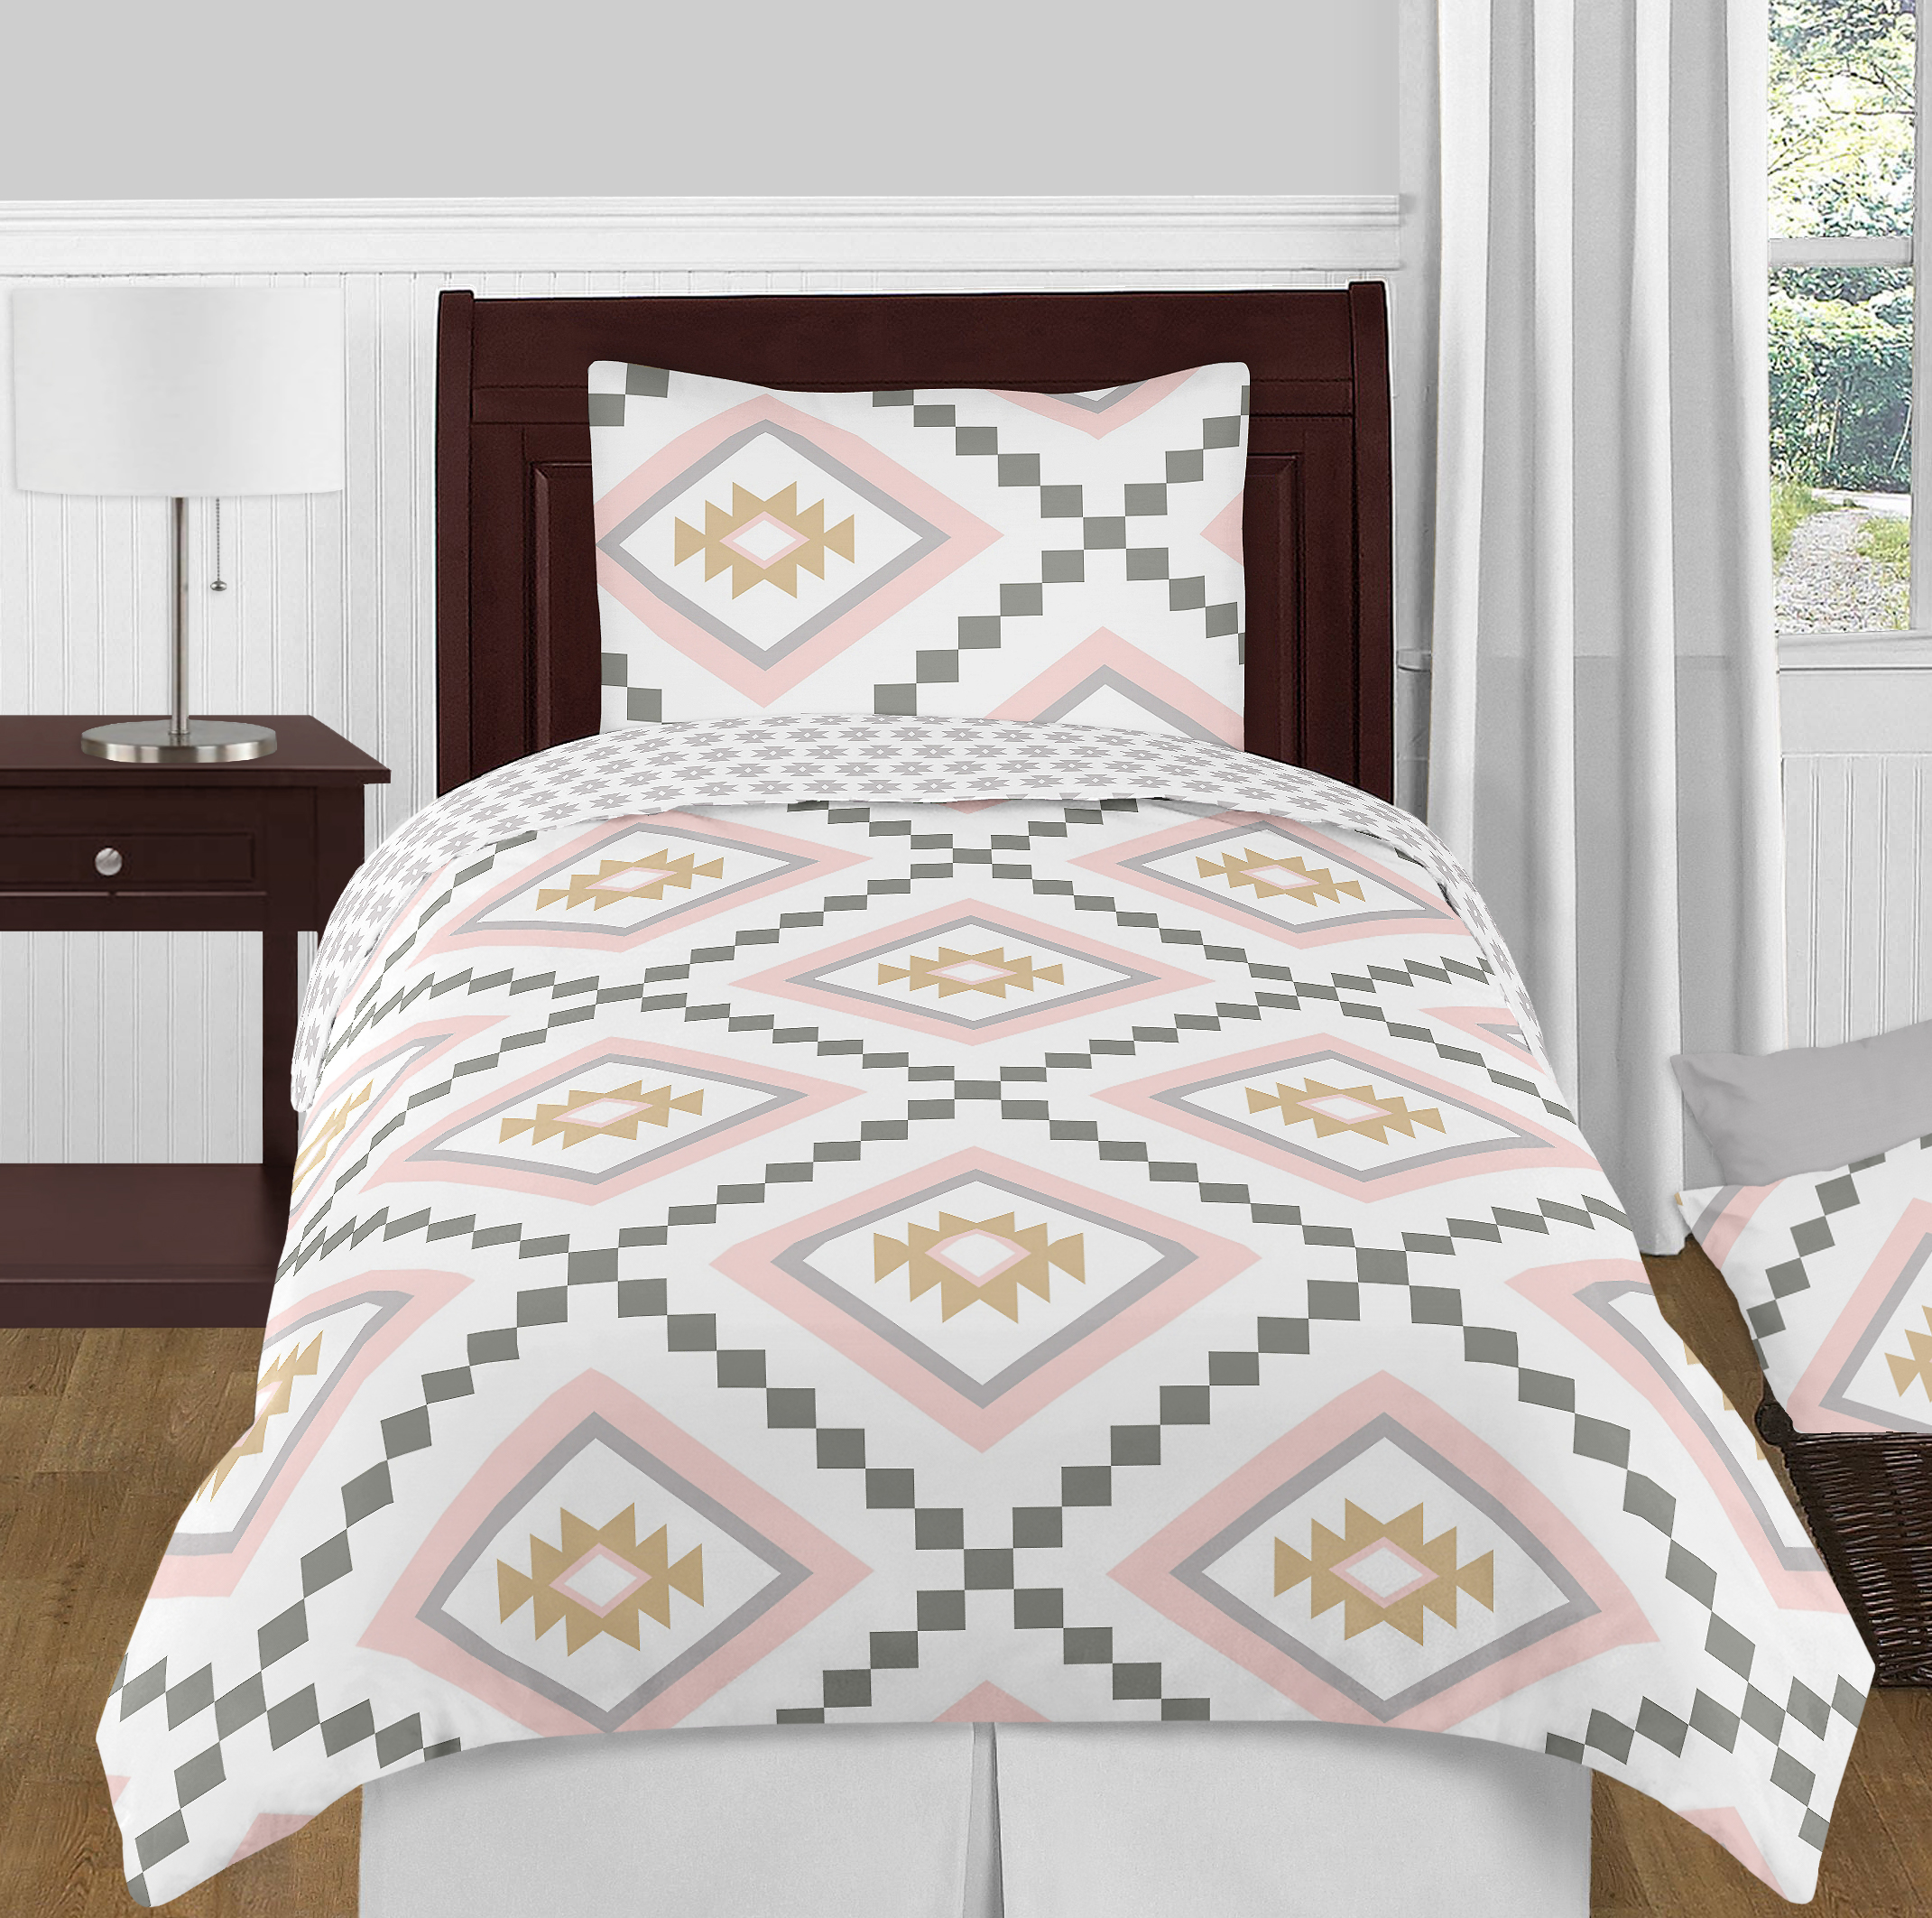 beds bed bedroom twin to king set bedding choose for comforters comforter sets pertaining